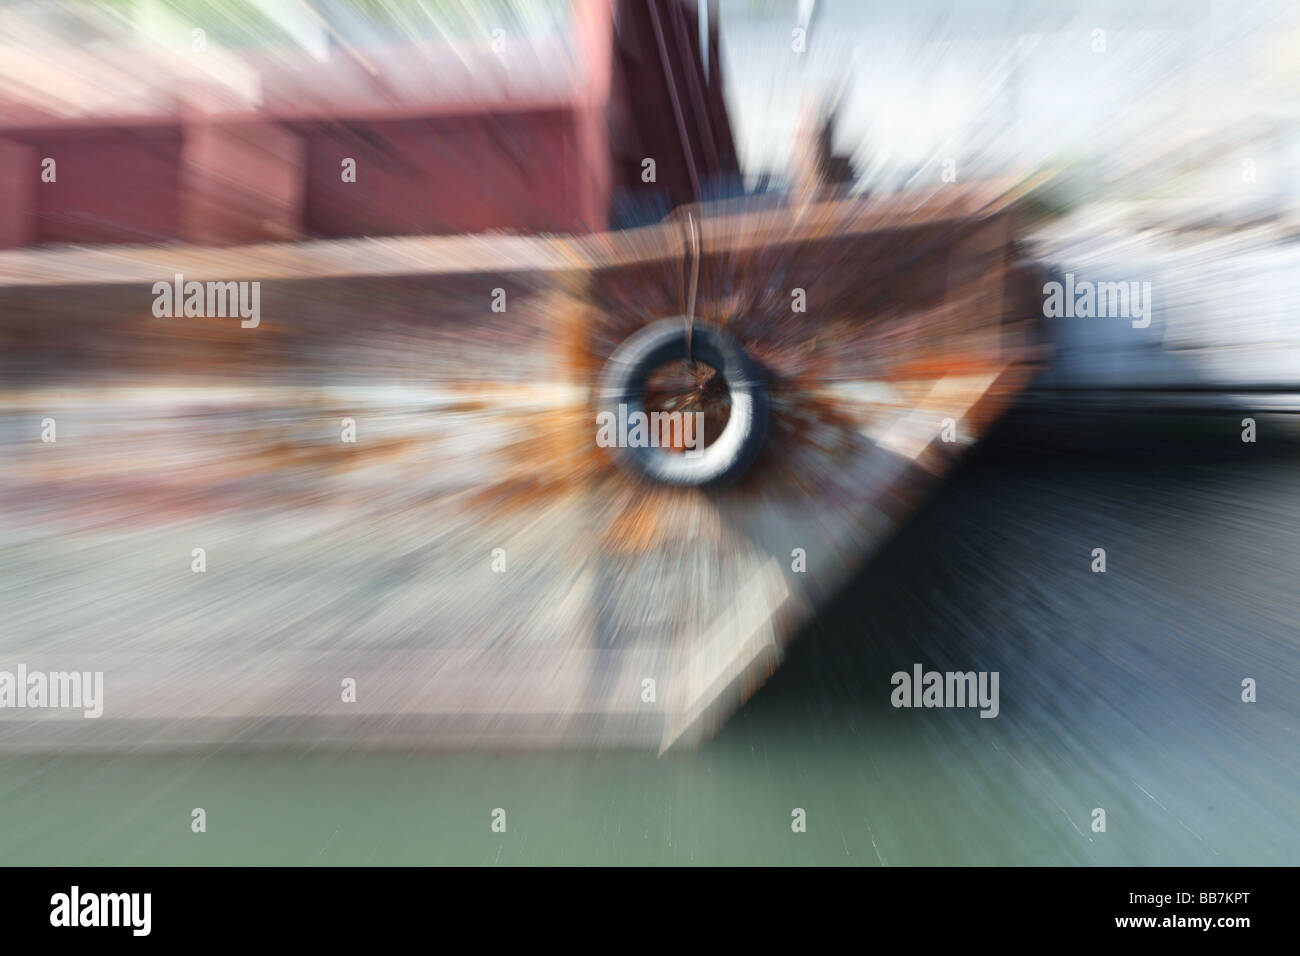 Barge with Zoom Blur - Stock Image